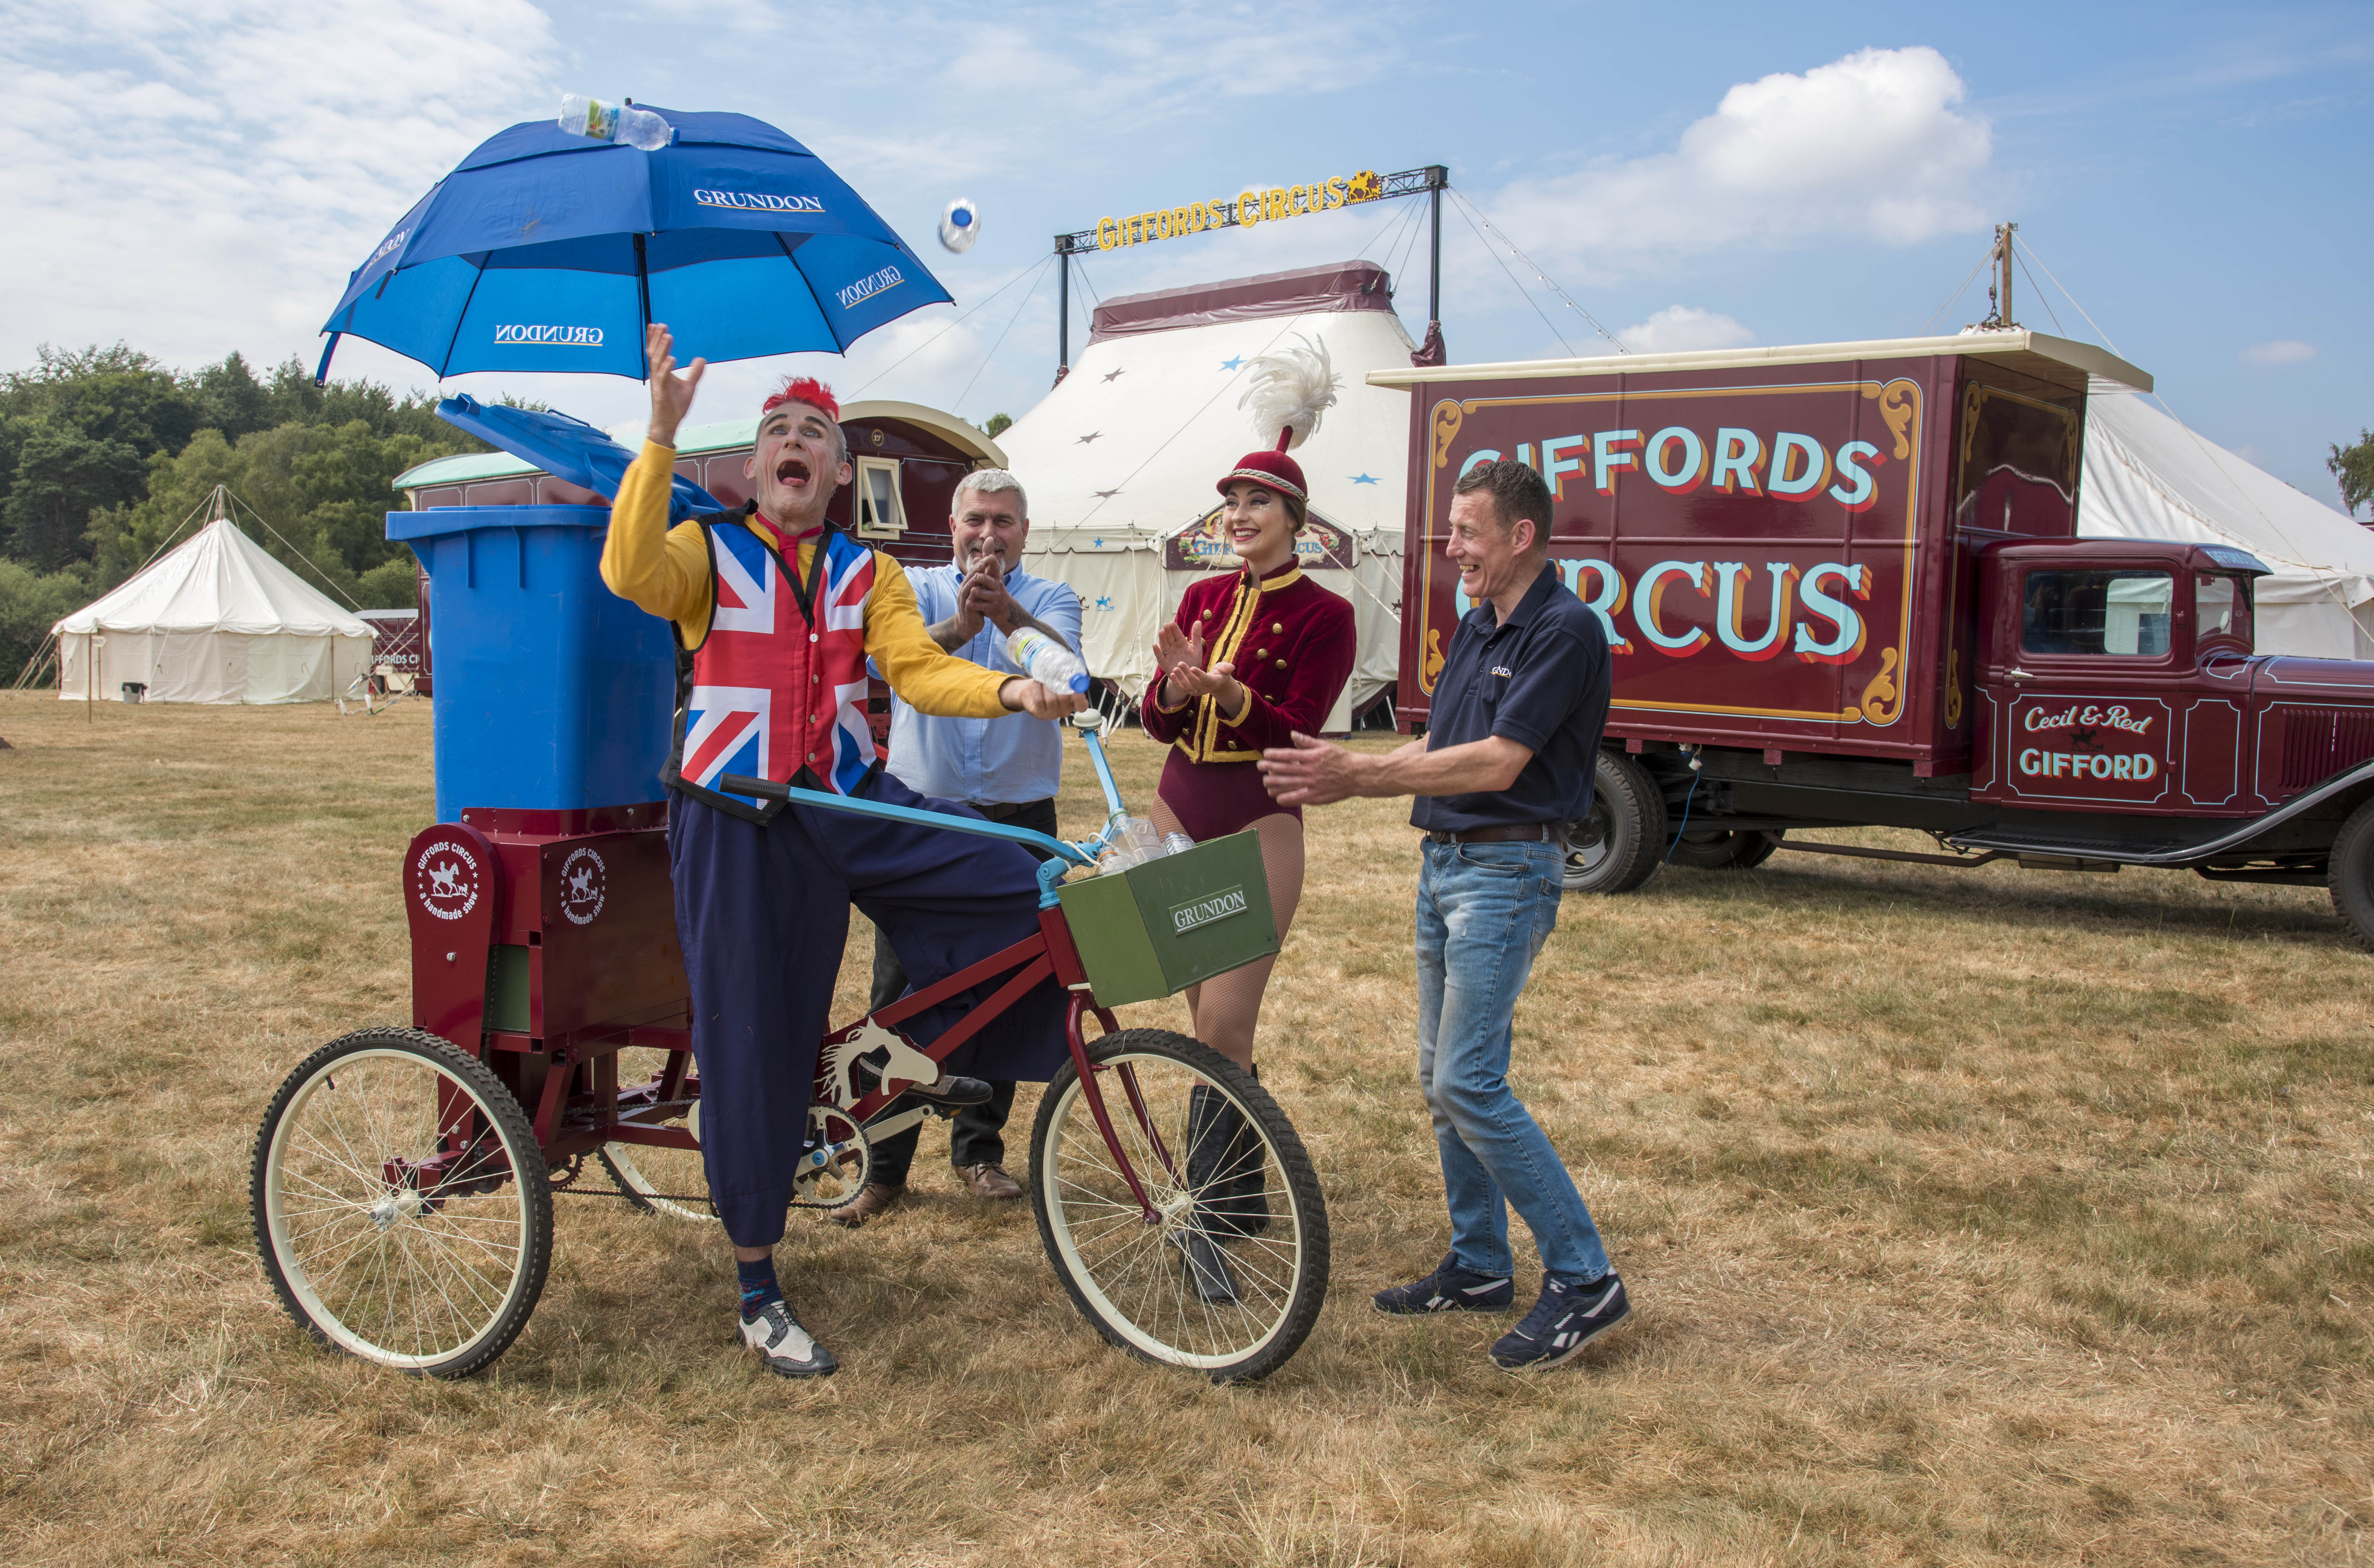 Tweedy shows off his juggling skills on the Recycle Bicycle watched by showgirl Lizzie and Grundon's Peter Kent (left) and Dave Forrest